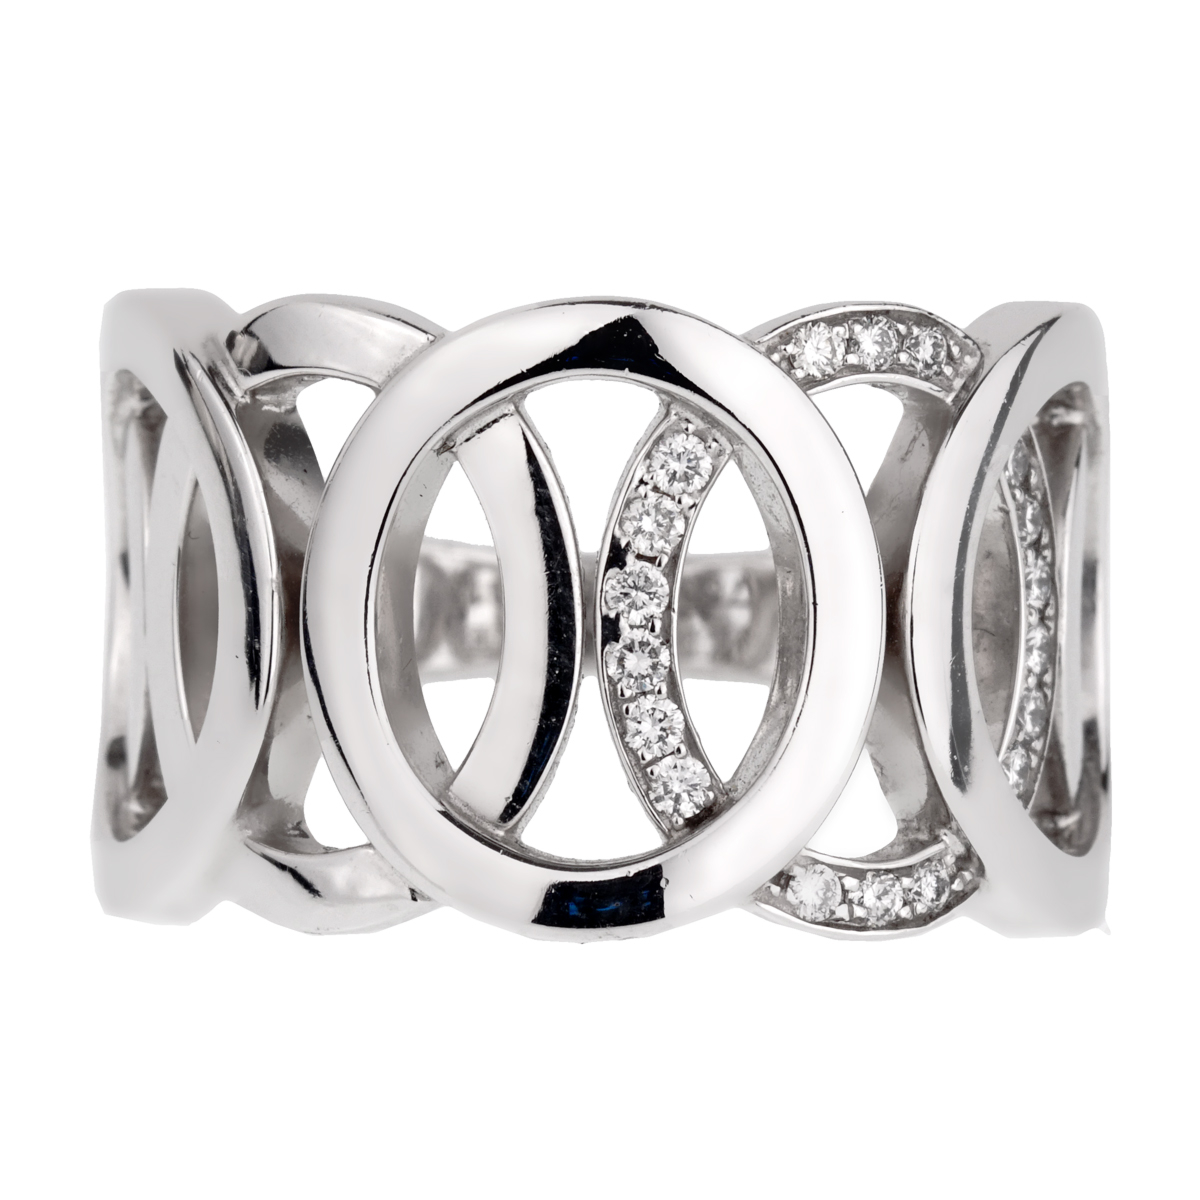 Audemars Piguet Millenary Diamond White Gold Ring - Audemars Piguet Jewelry